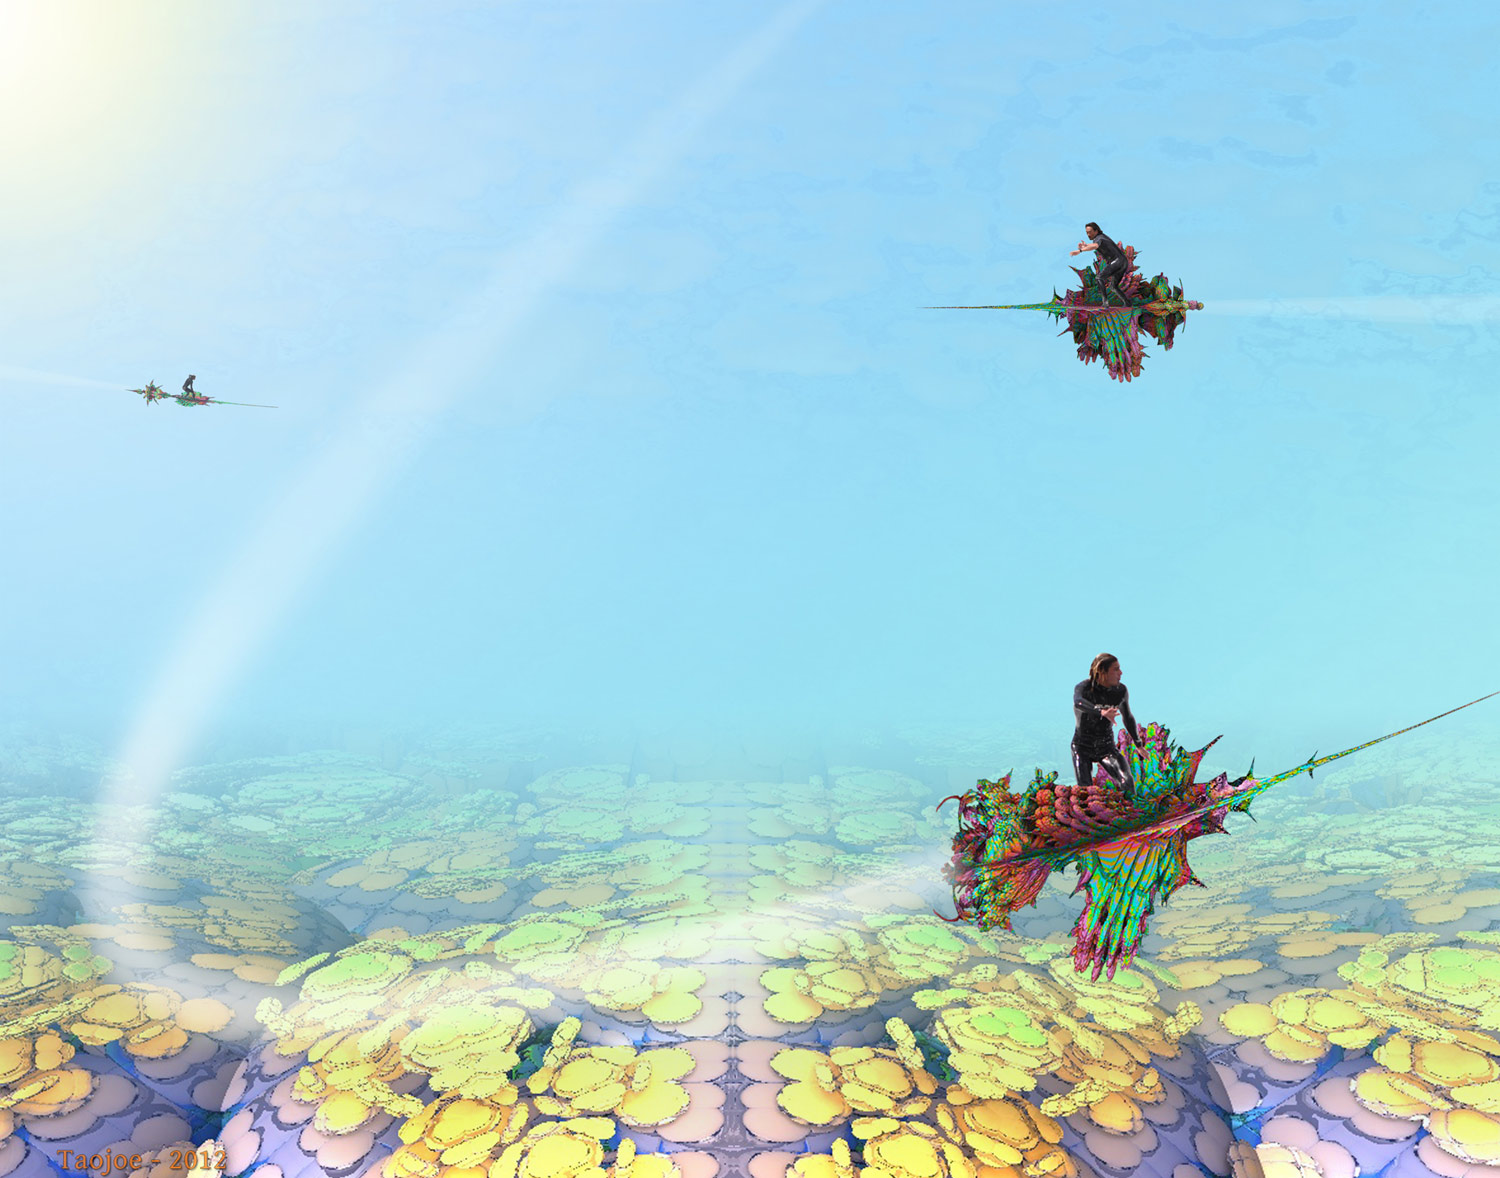 Fractal Riders From... Someplace Someplace